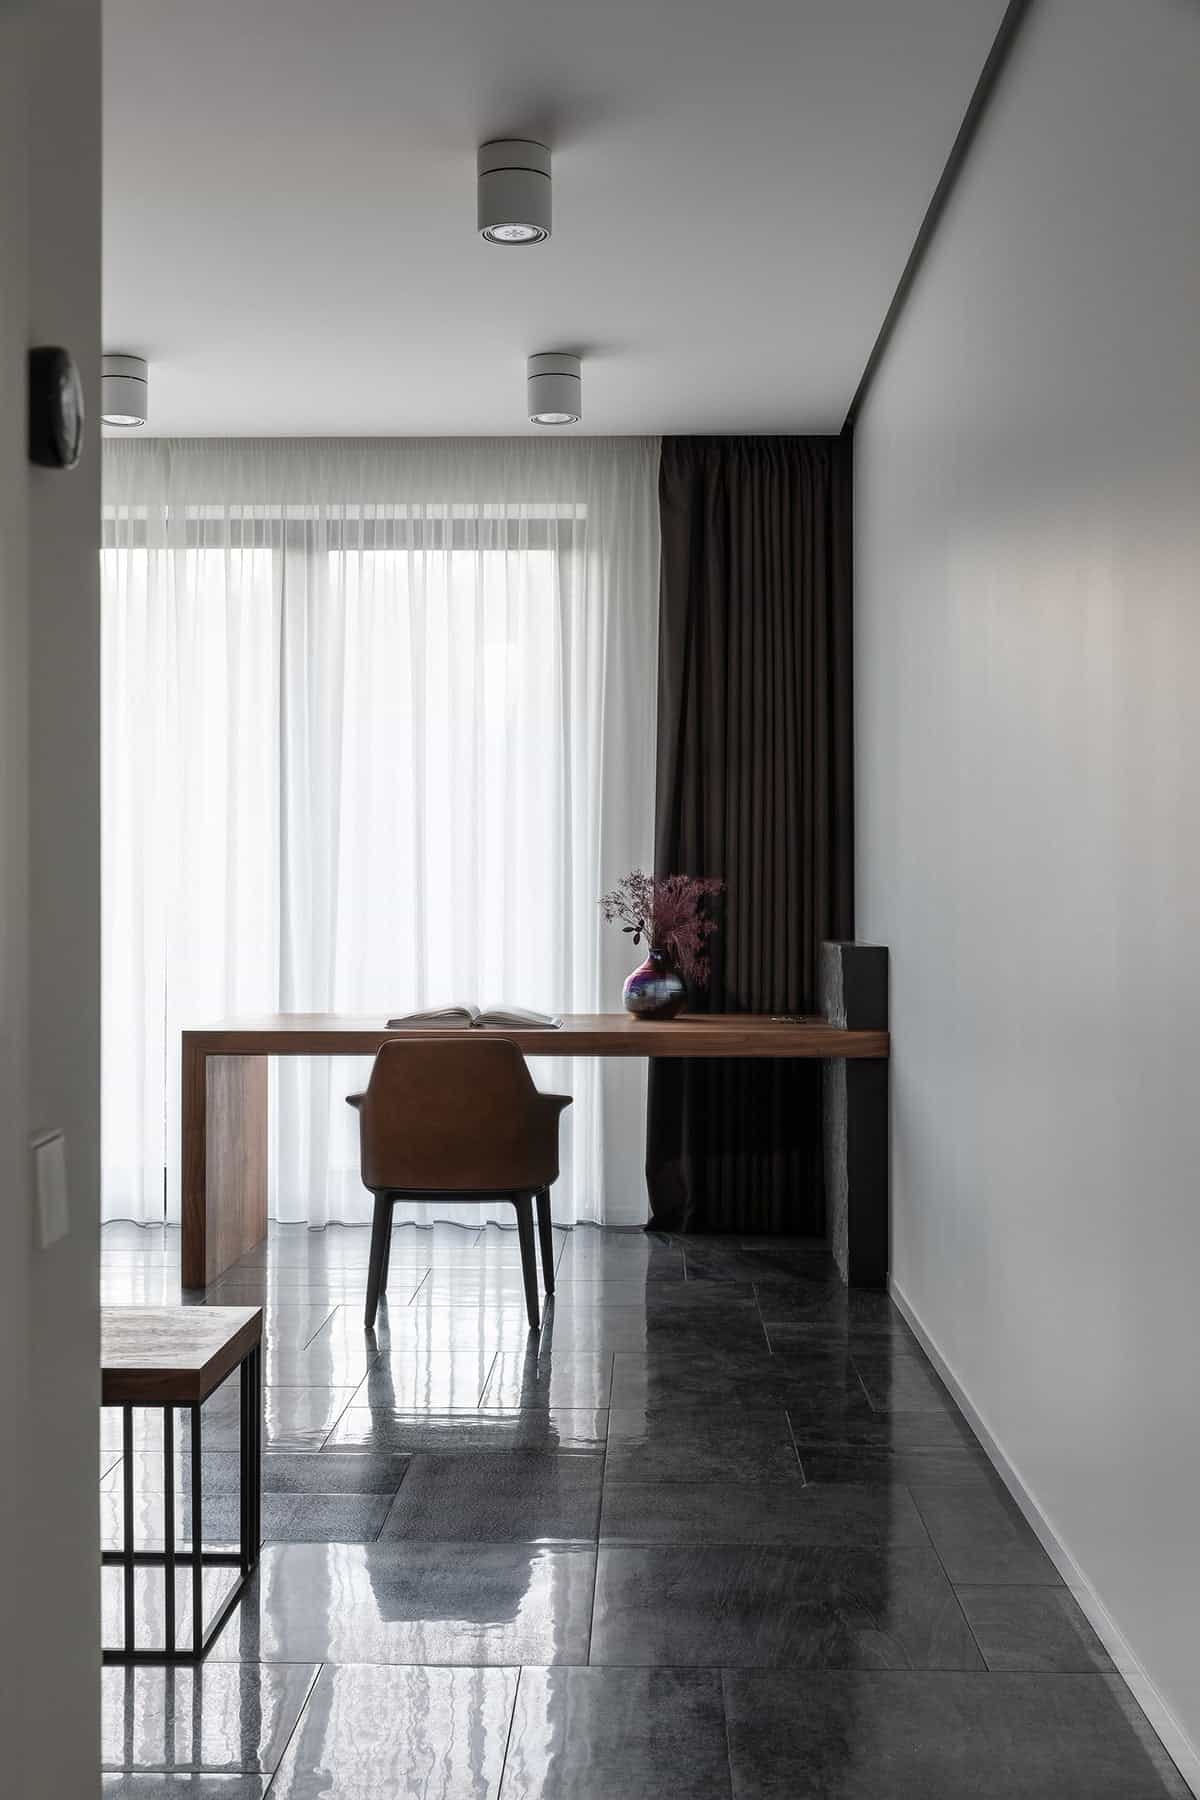 This is a simple corner office with white walls and white ceiling illuminated by the curtained glass wall. This makes the contrast with the black flooring tiles and the black curtain along with the support of the built-in desk.